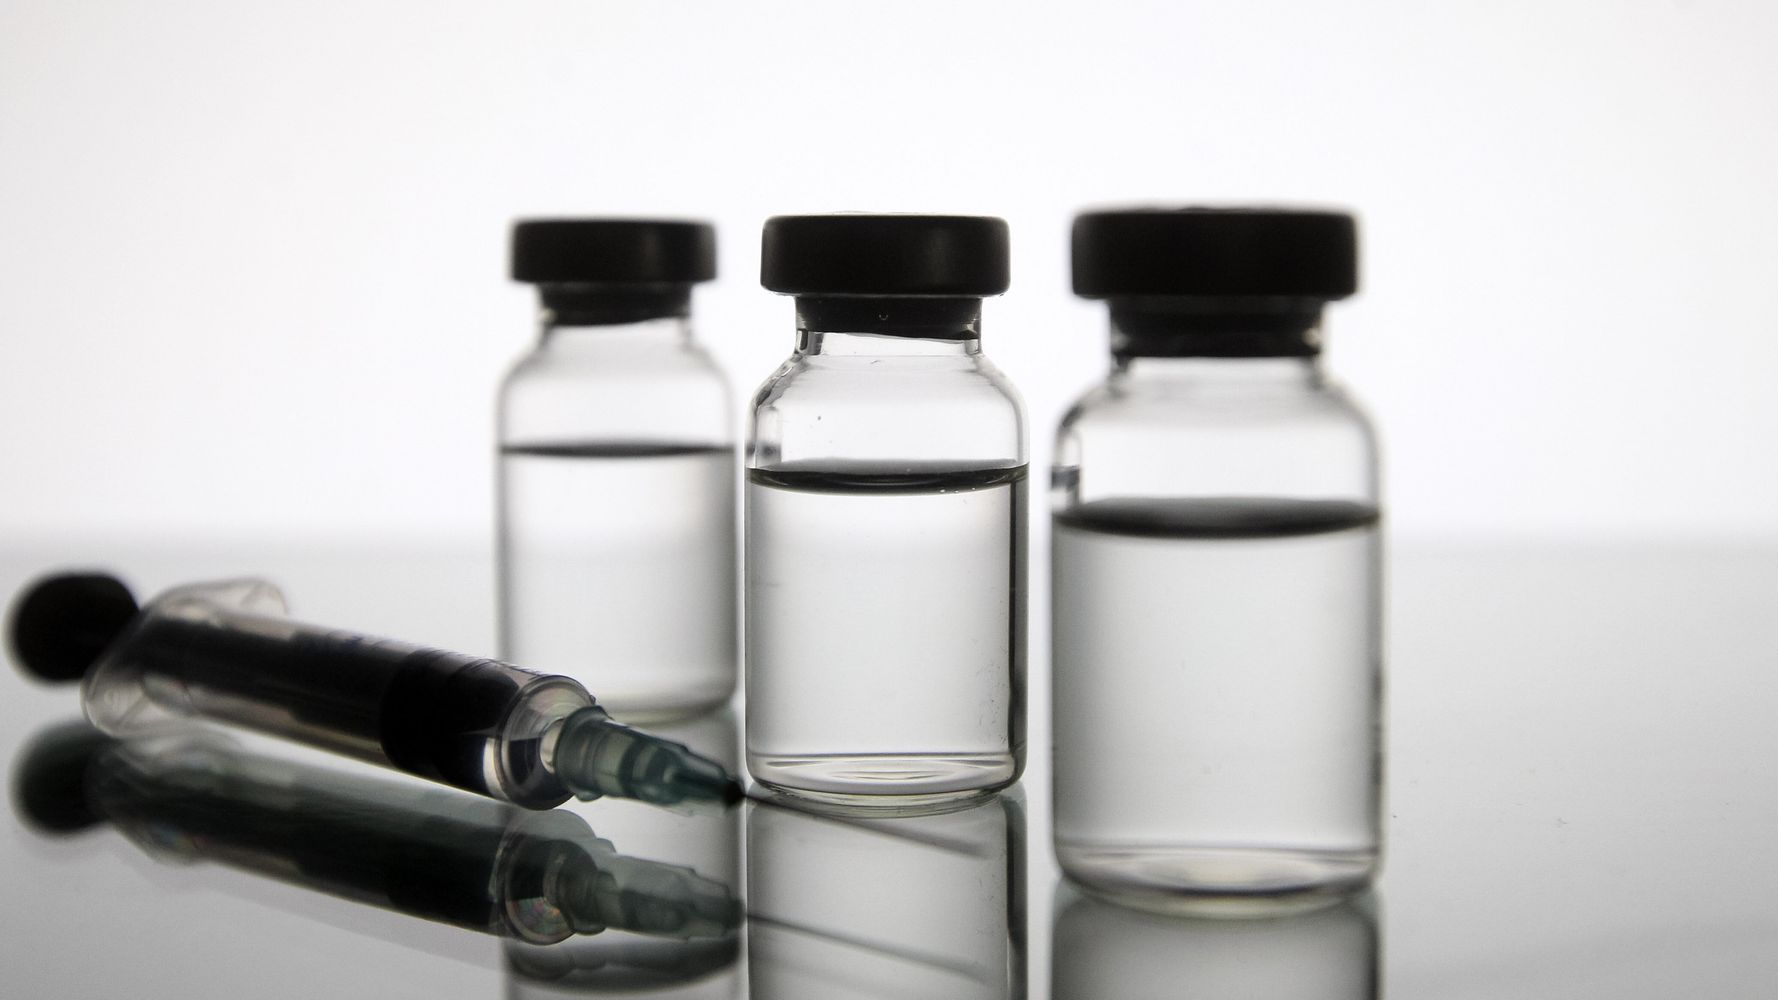 Moderna To Ask U.S., European Regulators To Allow Use Of COVID-19 Vaccine